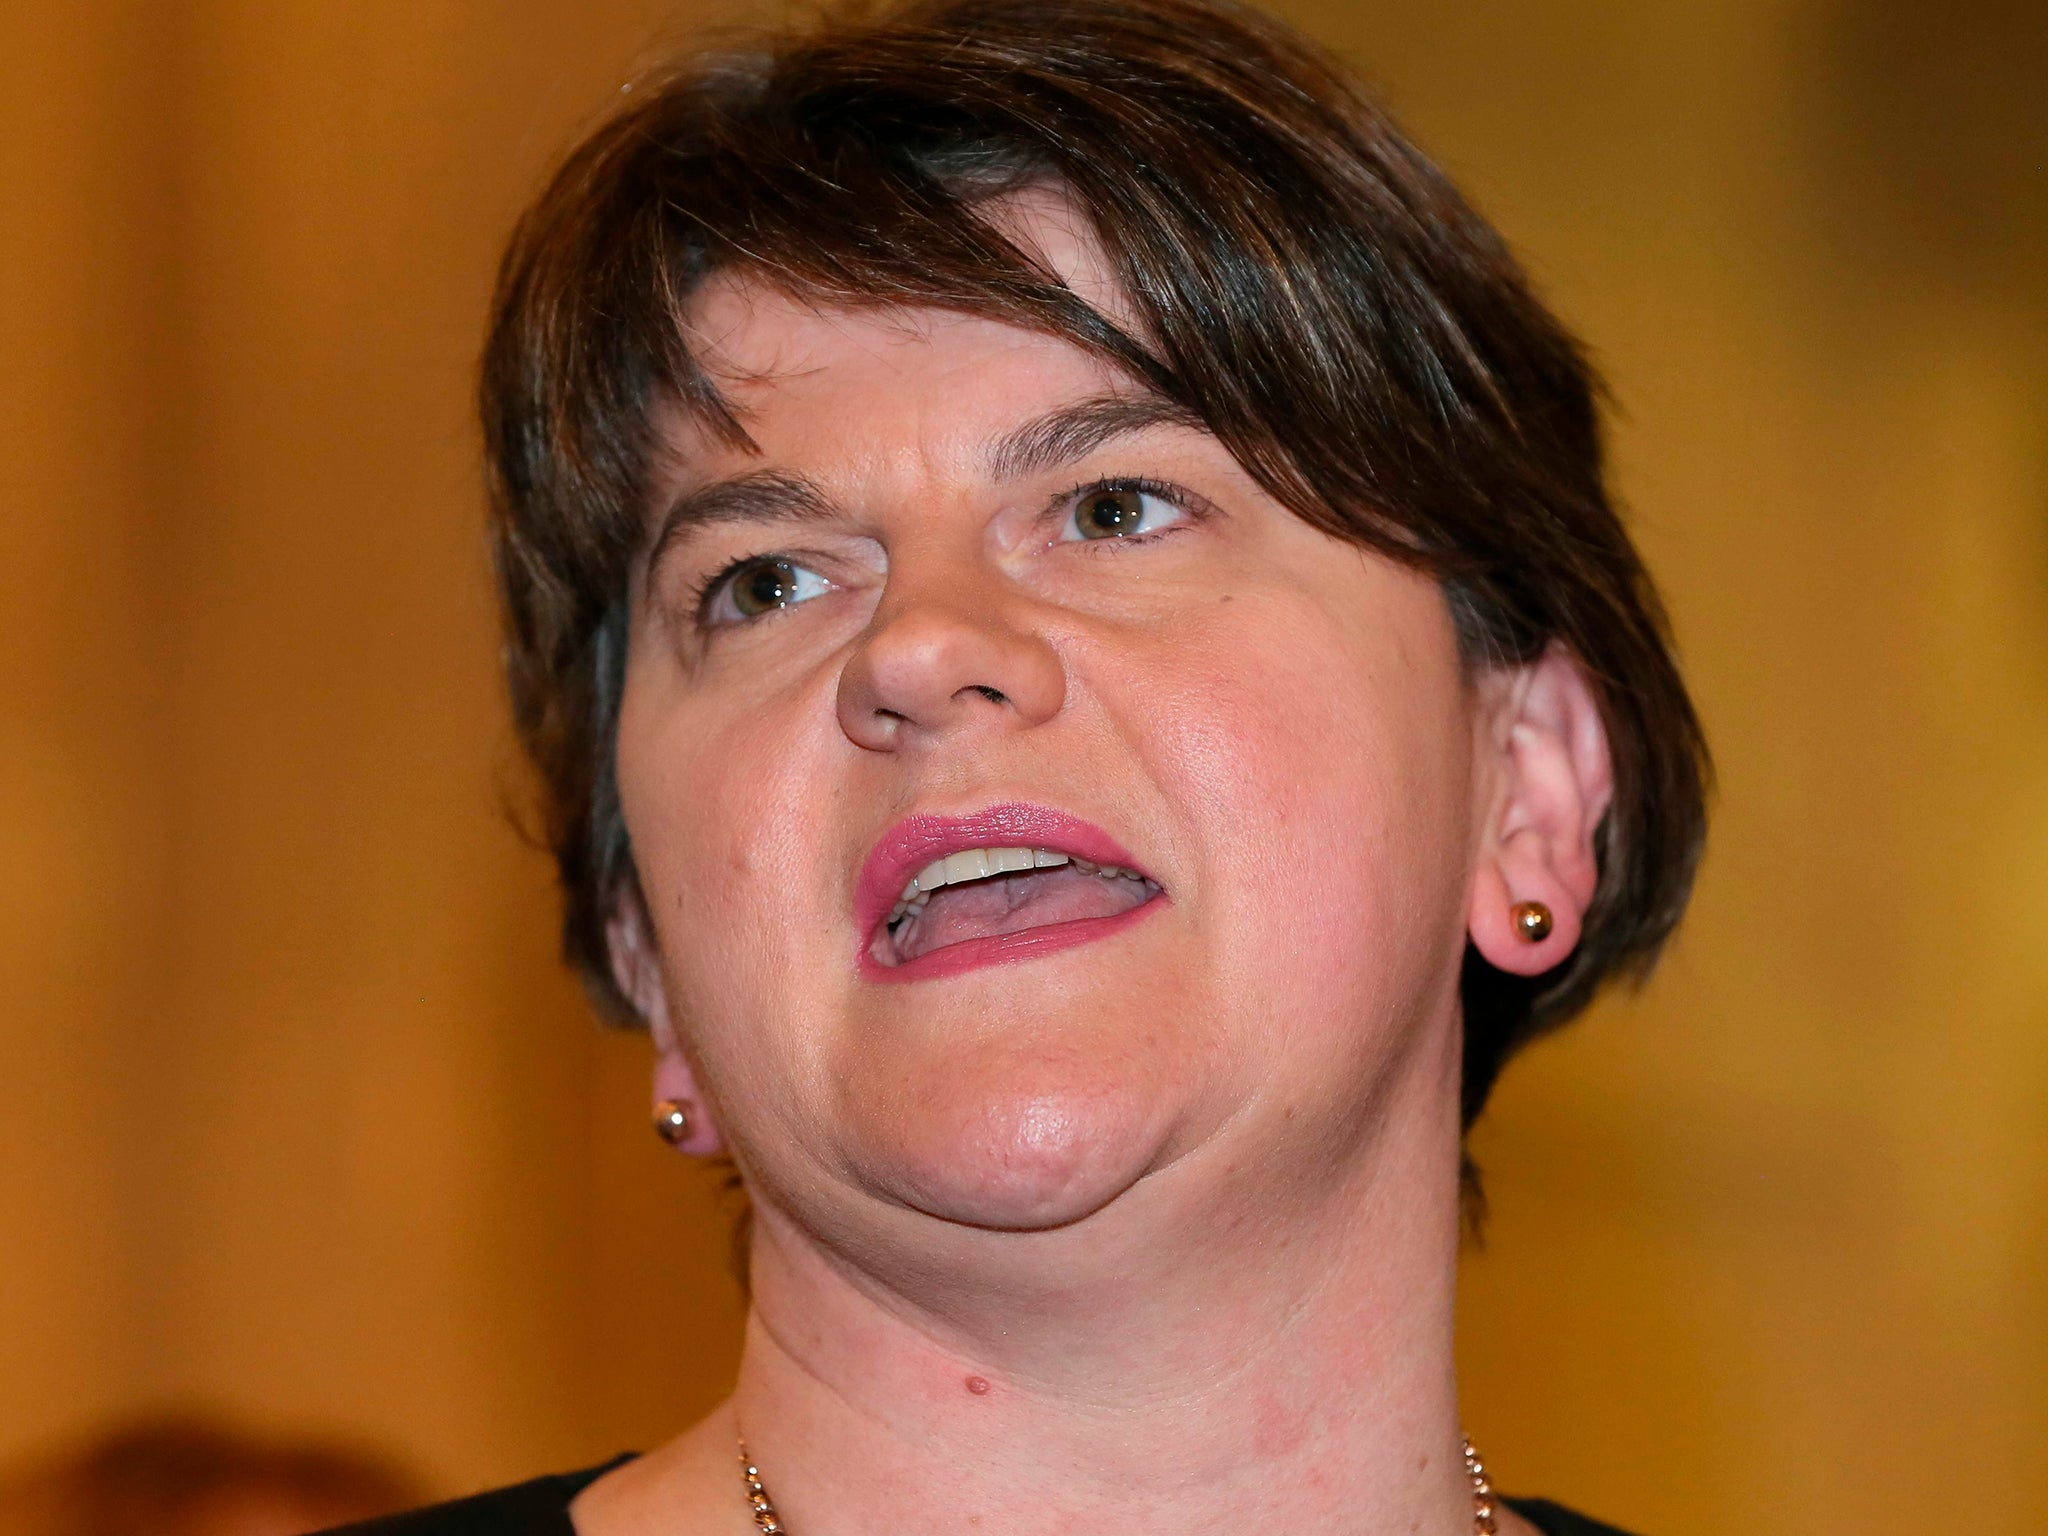 817c9a2c0 Theresa May's visit to Northern Ireland described as 'distraction' by  Arlene Foster | The Independent